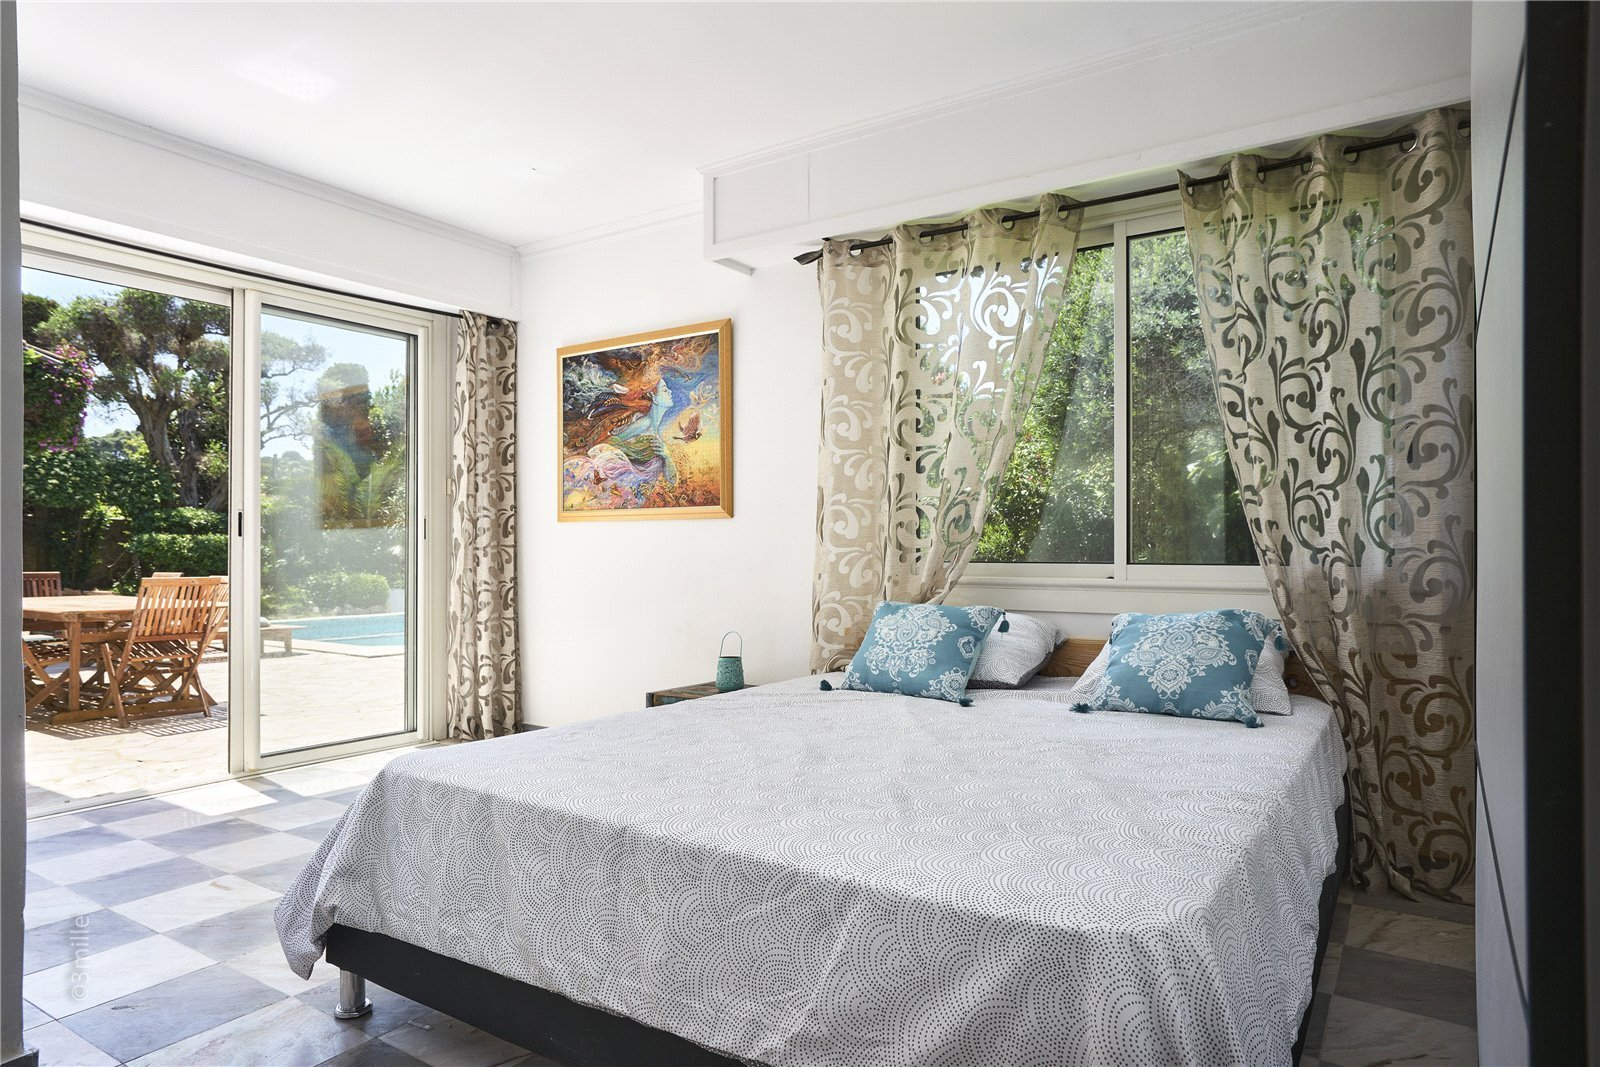 Buying Villa Cap d'Antibes Charming 4 bedroom villa with pool, ideally located for the beaches.